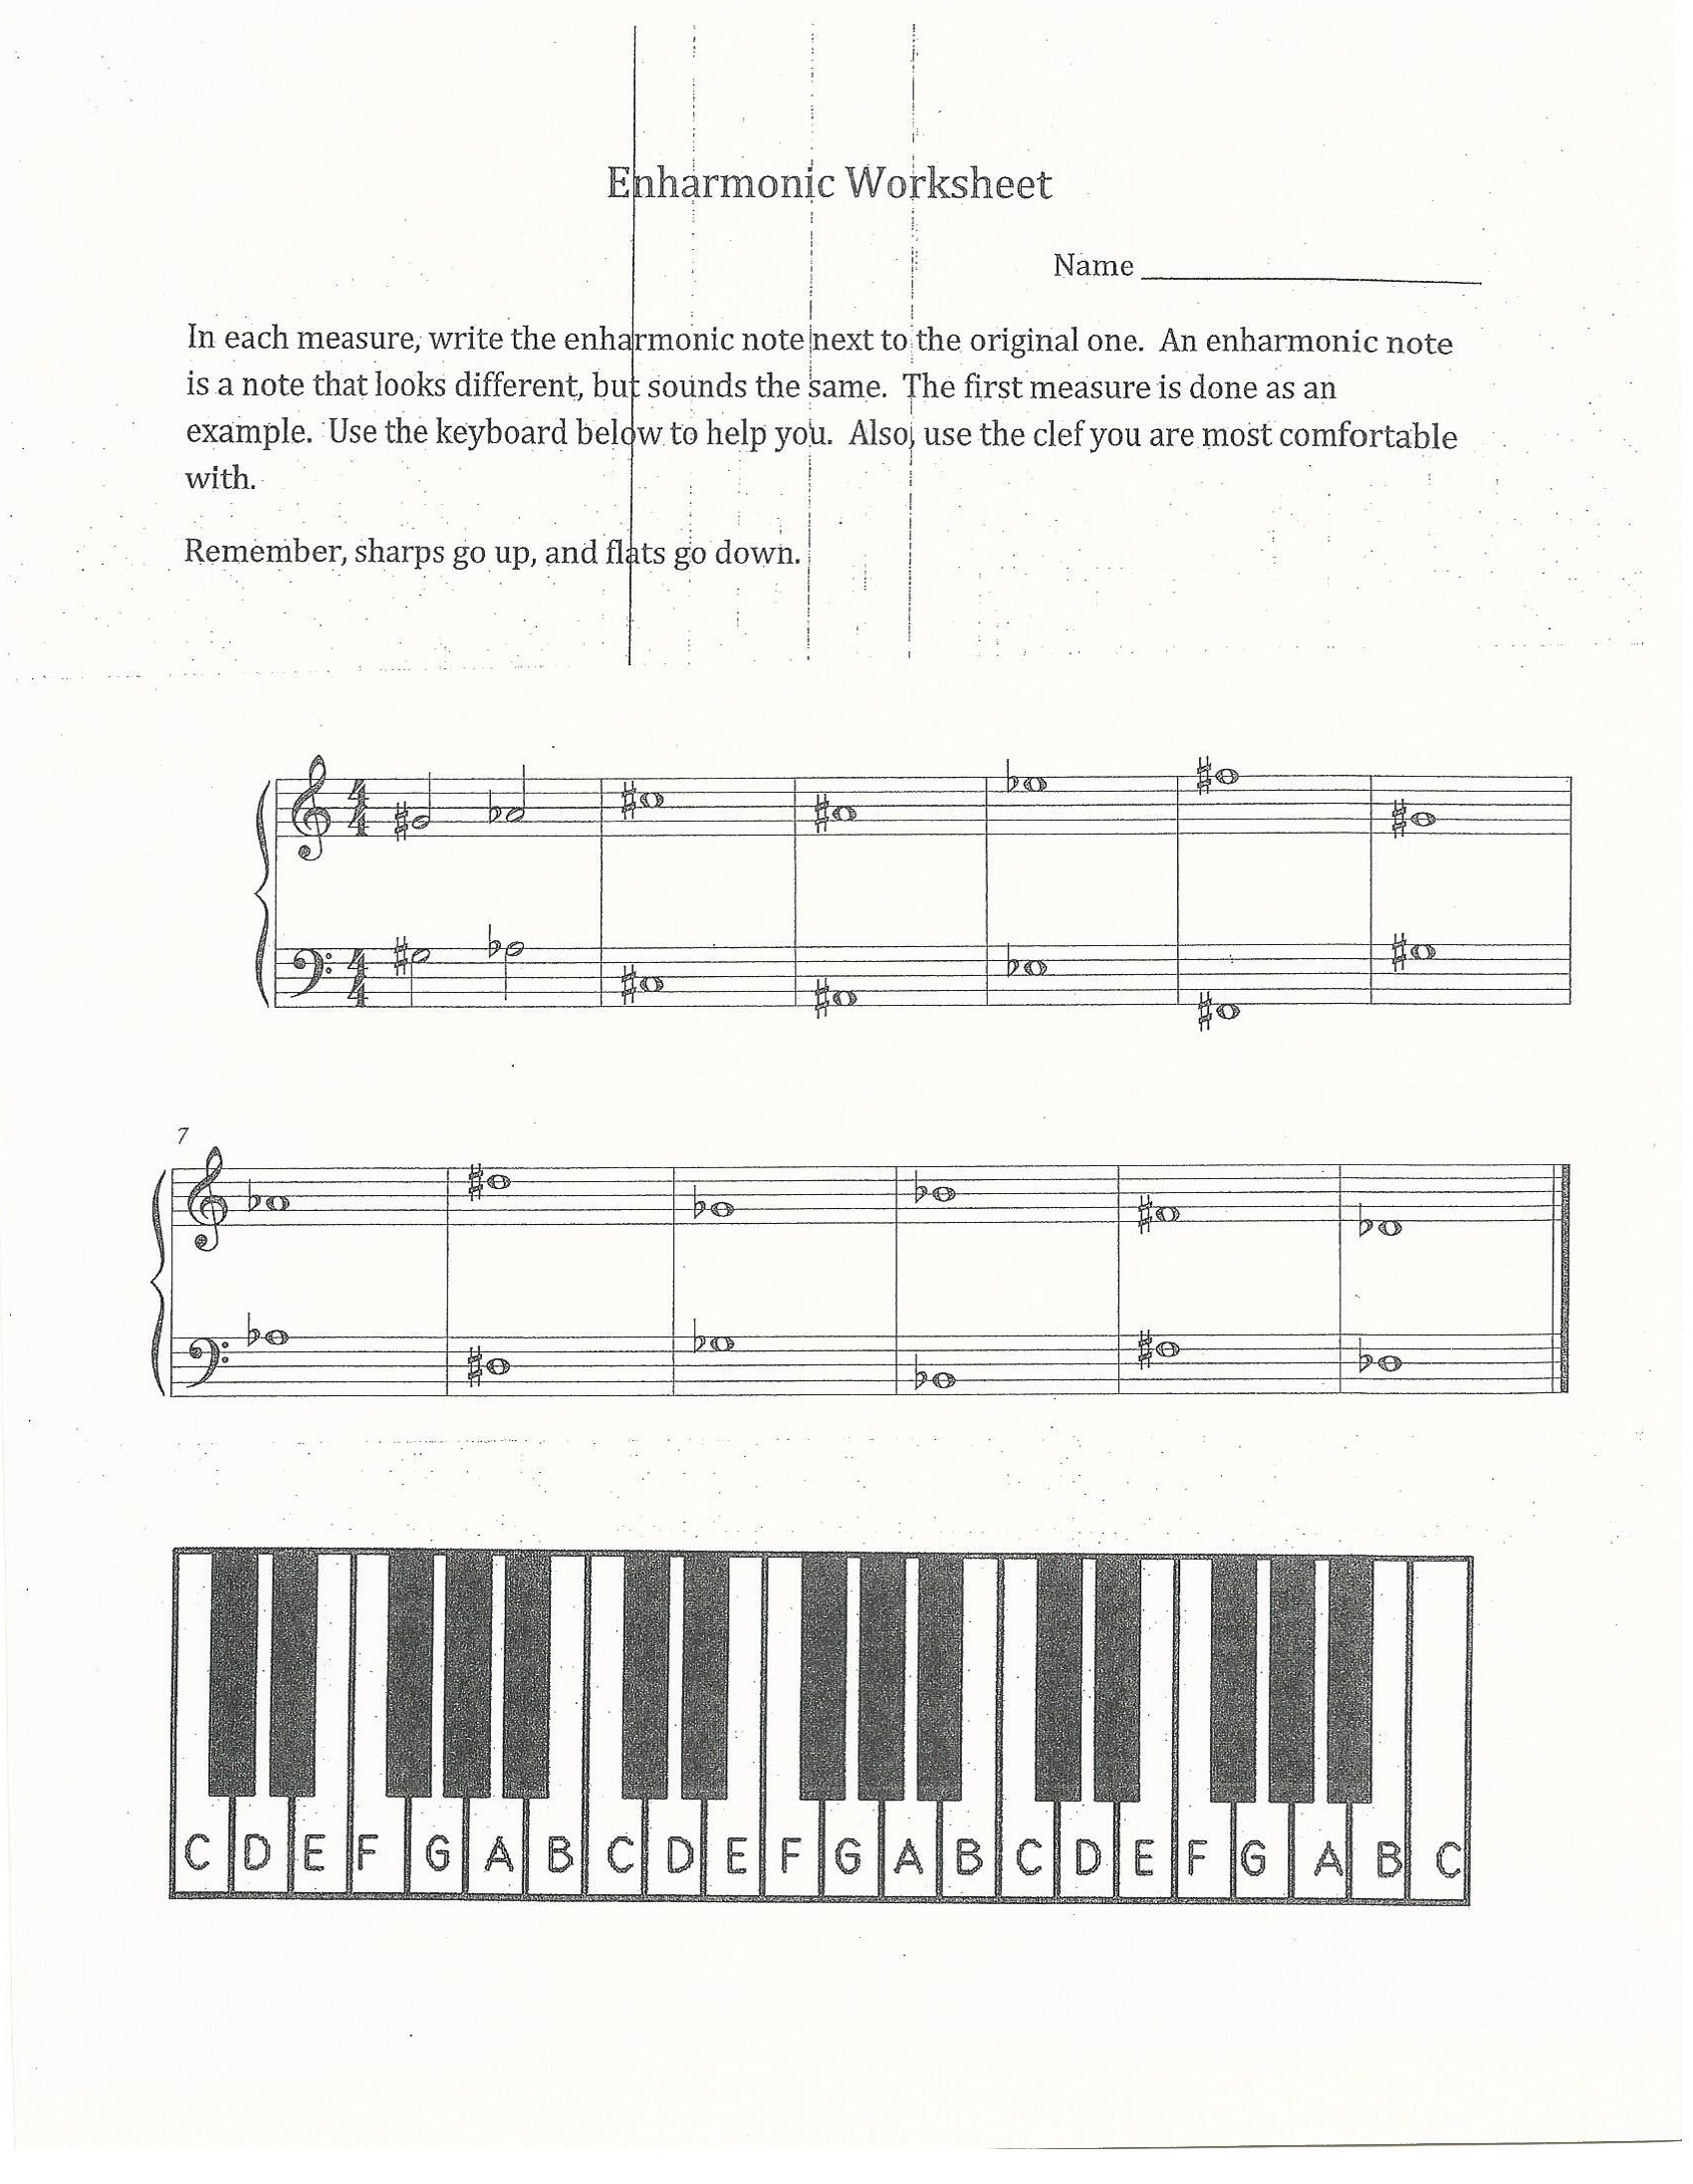 Enharmonic Worksheet I Created This Worksheet To Teach